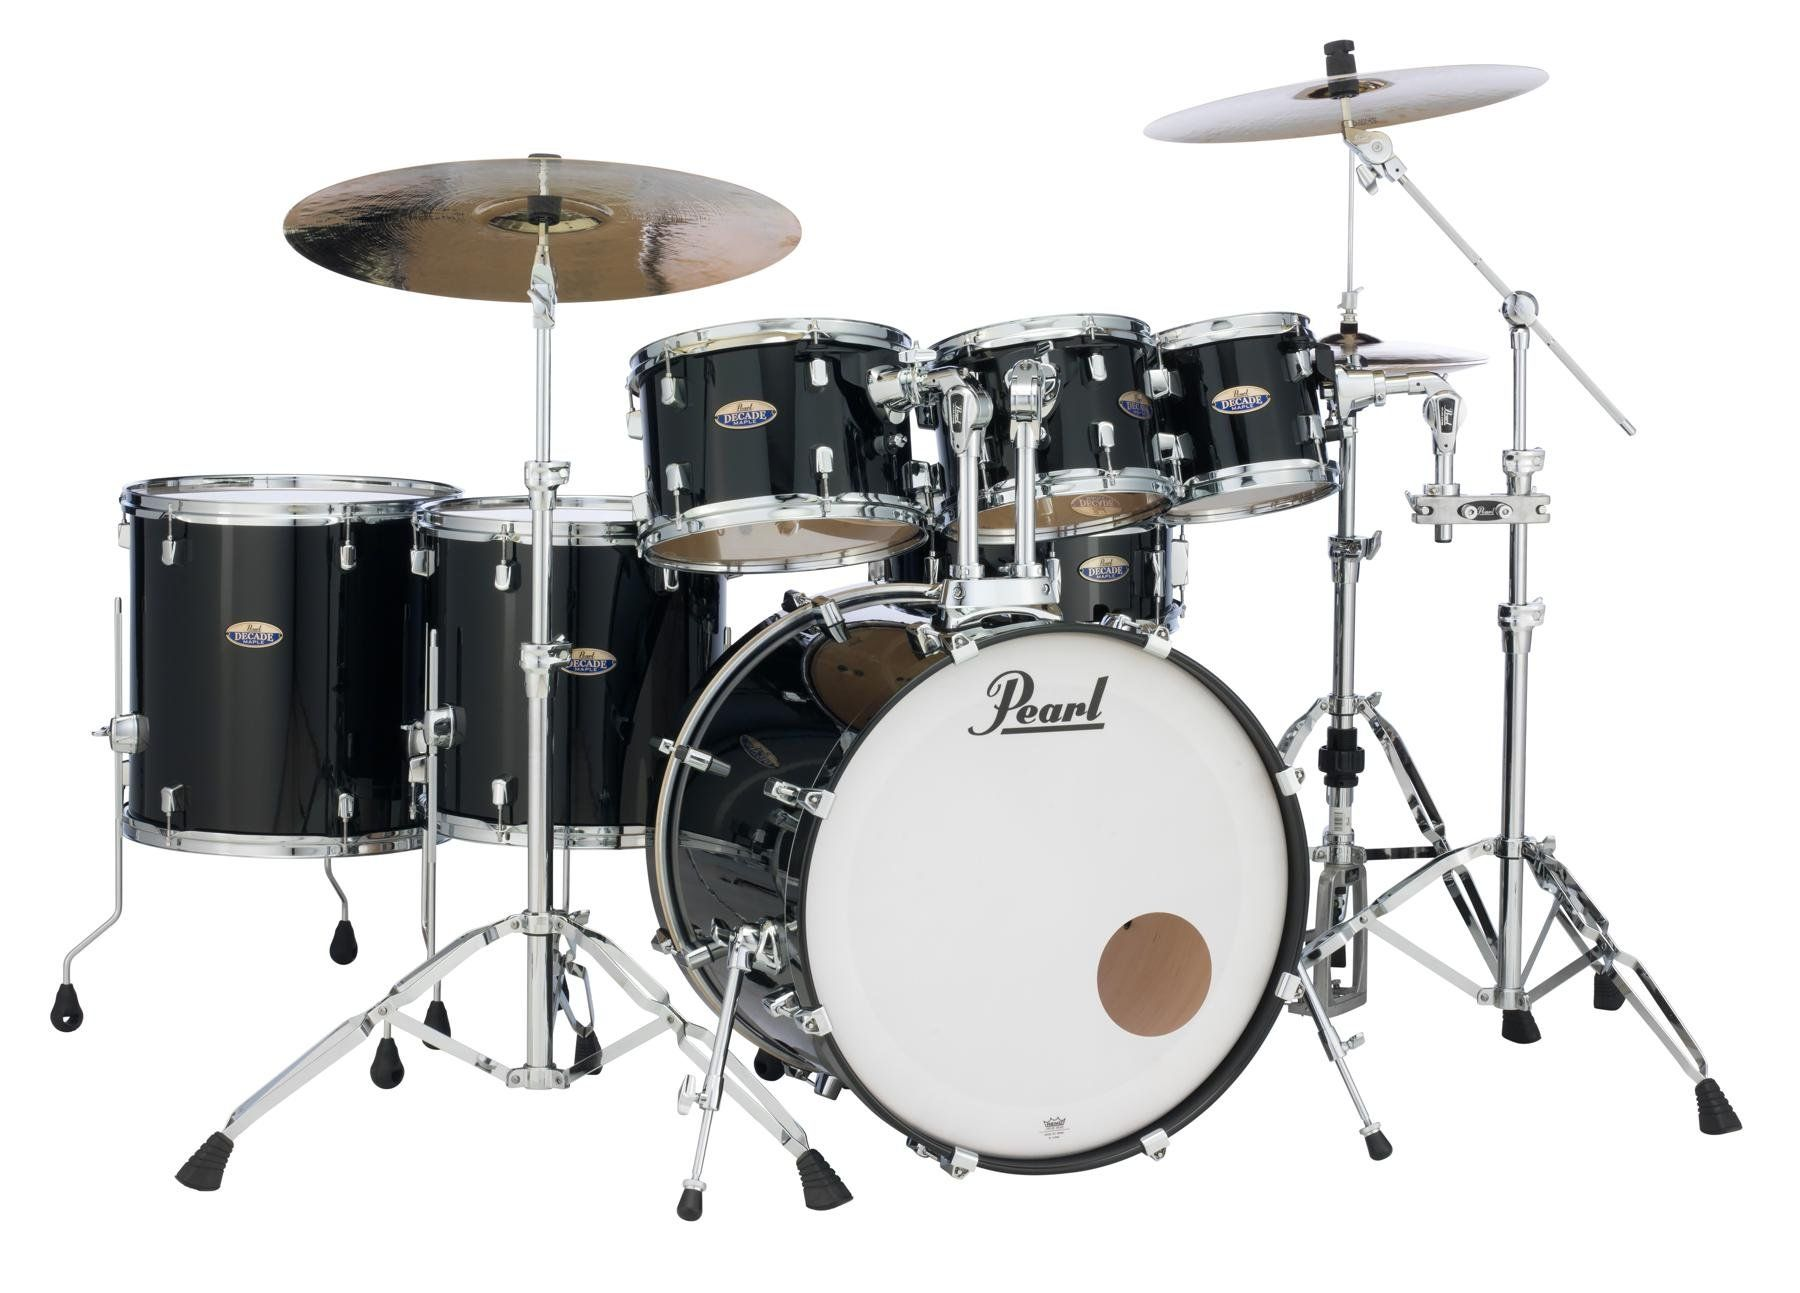 Pearl Decade Maple Kit With Sabian Sr Cymbals And Pearl Hardware